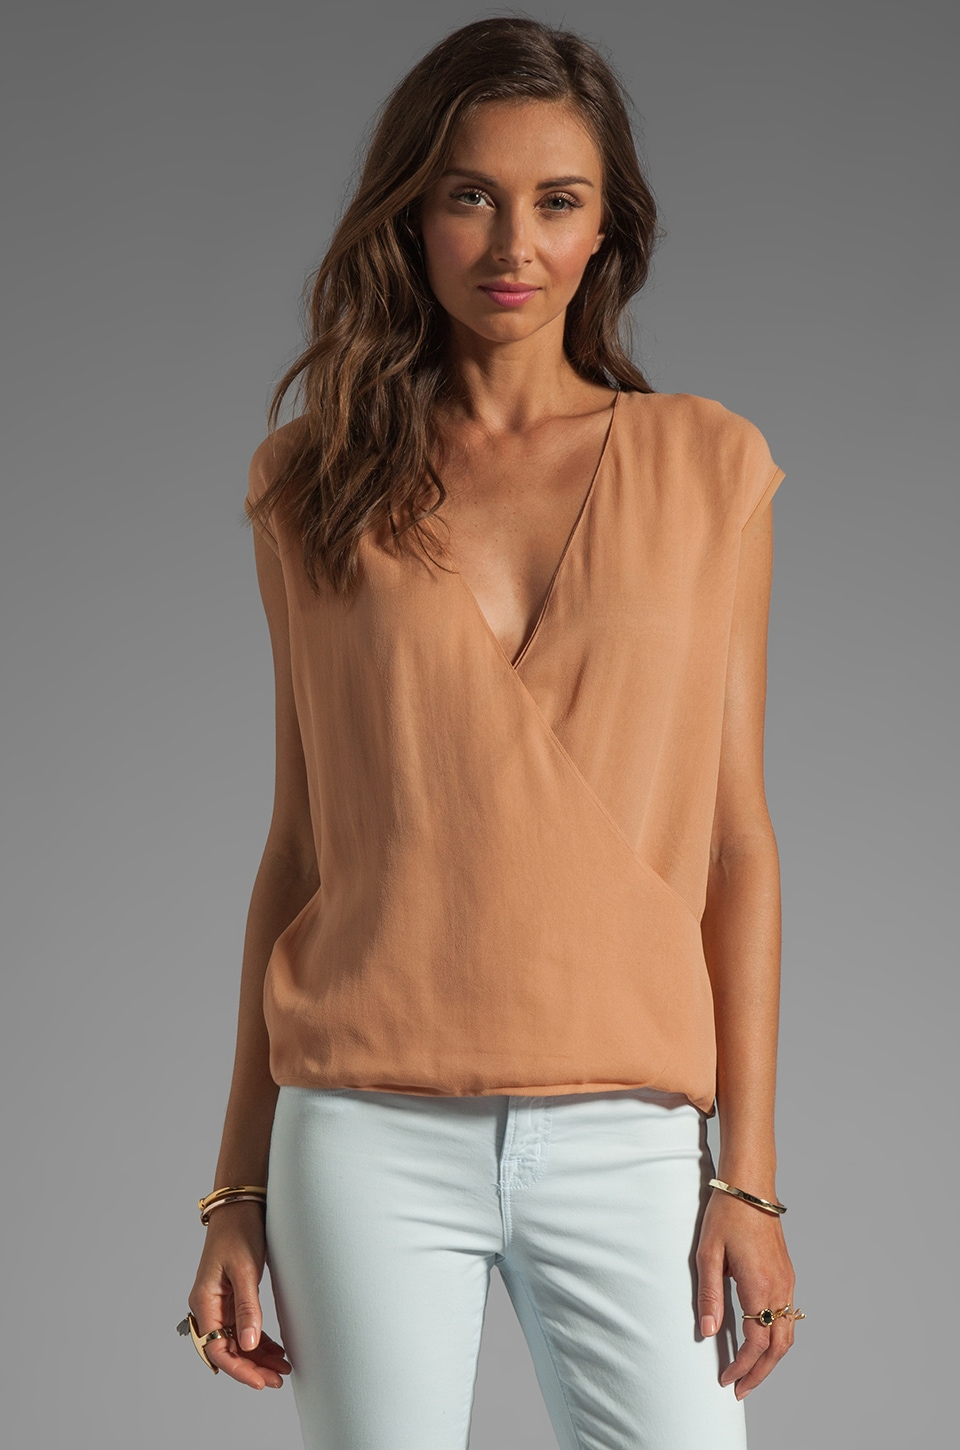 Tibi Alison Wrap Top in Au Lait